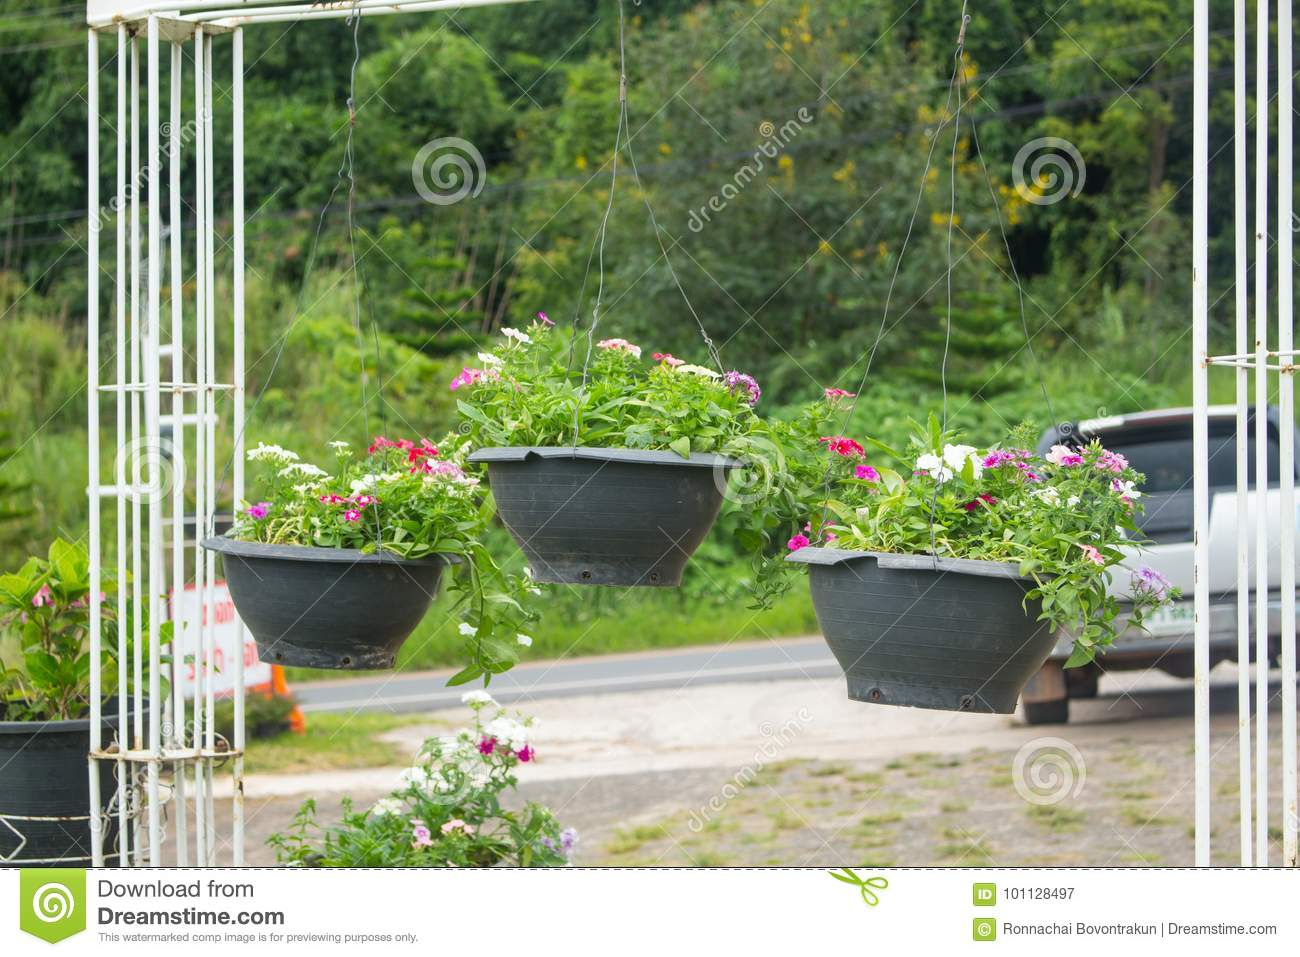 Garden Designs With Hanging Flower Pot In High Season Or Winter Stock Image Image Of Front Gardening 101128497